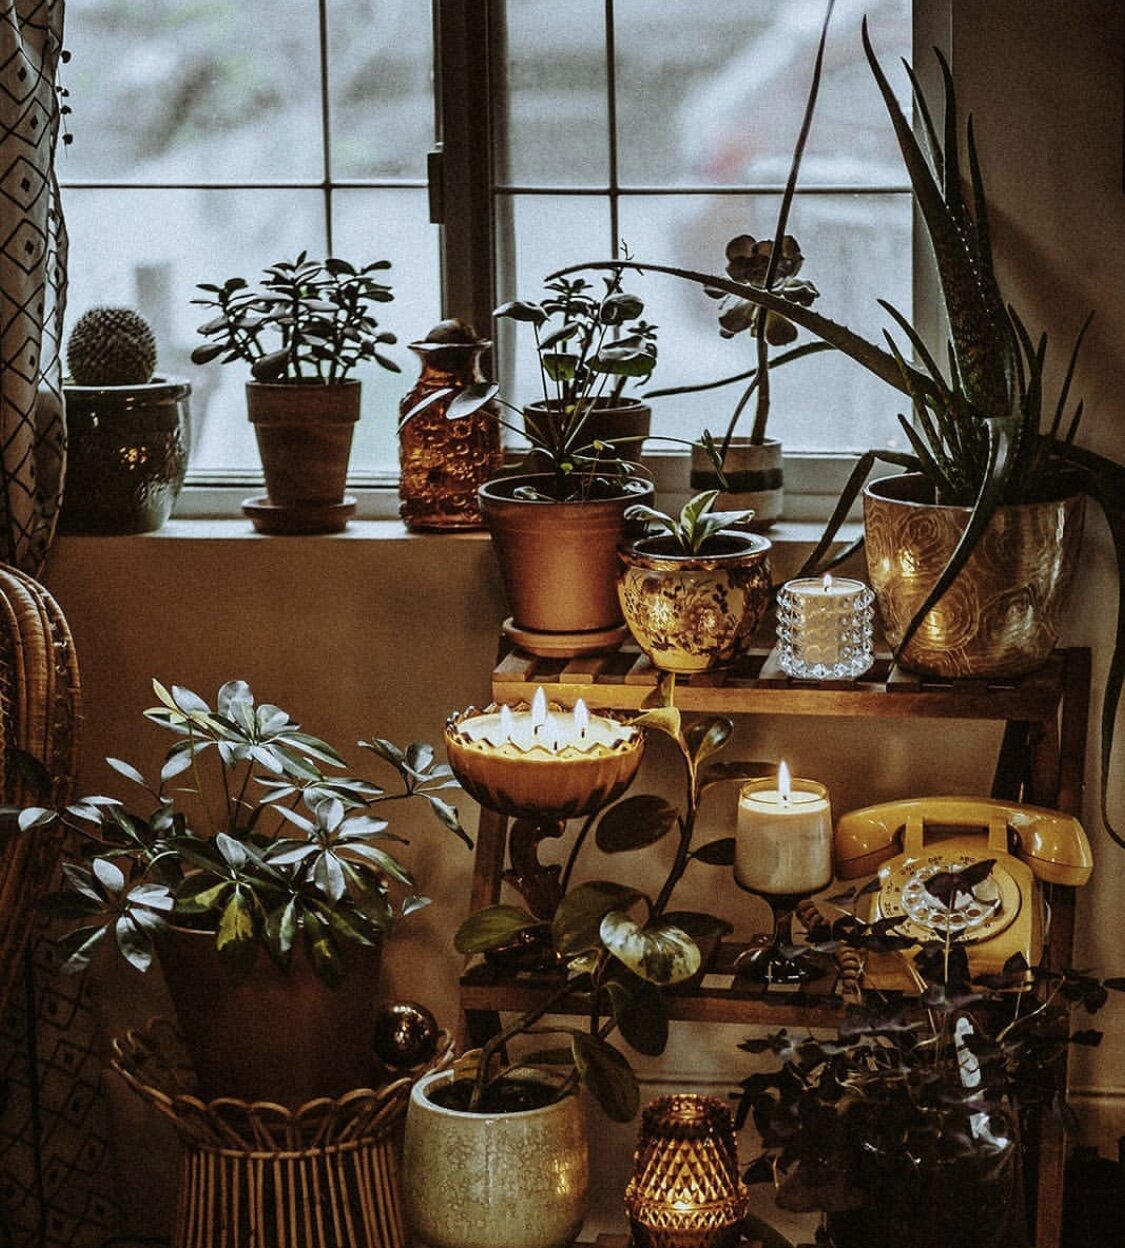 Bringing Hygge Into your Life  - By Kelley Abbey